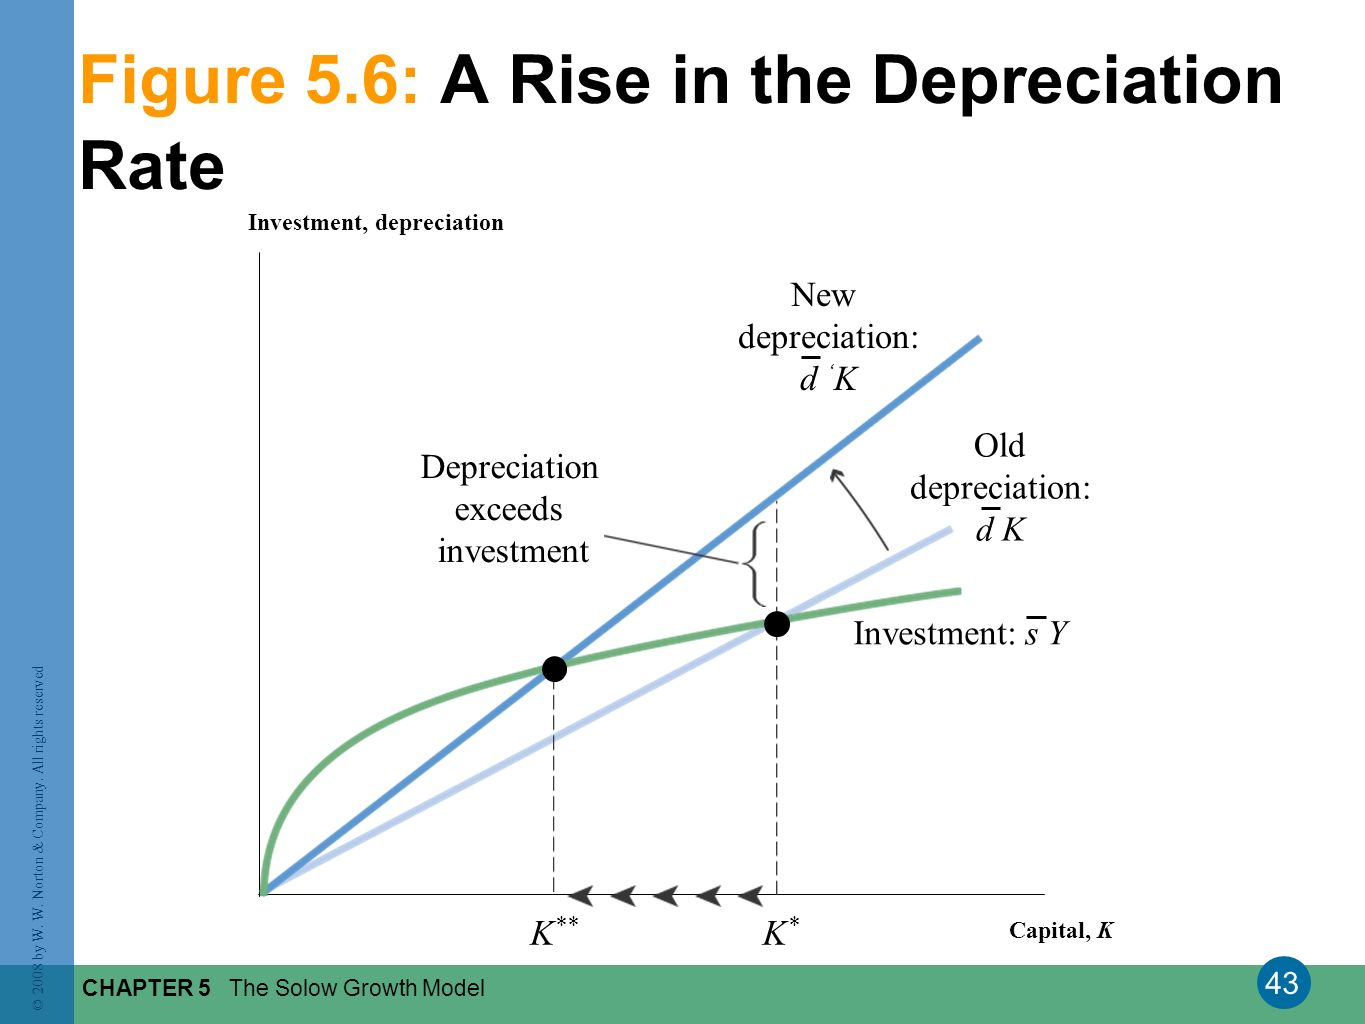 Figure 5.6: A Rise in the Depreciation Rate